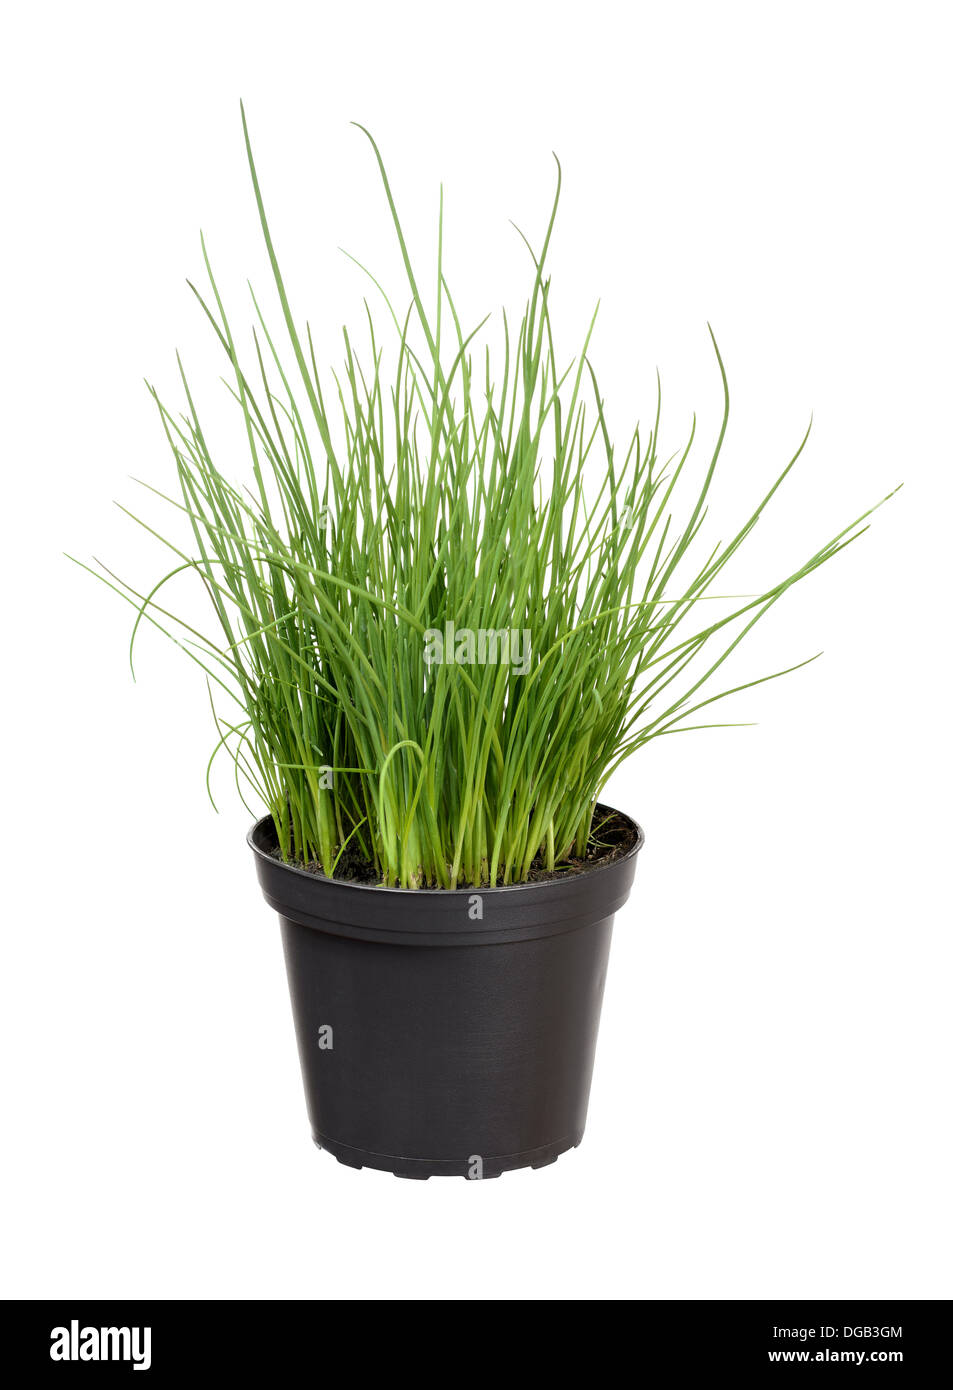 Image of: Chives Plant In Pot Stock Photo Alamy